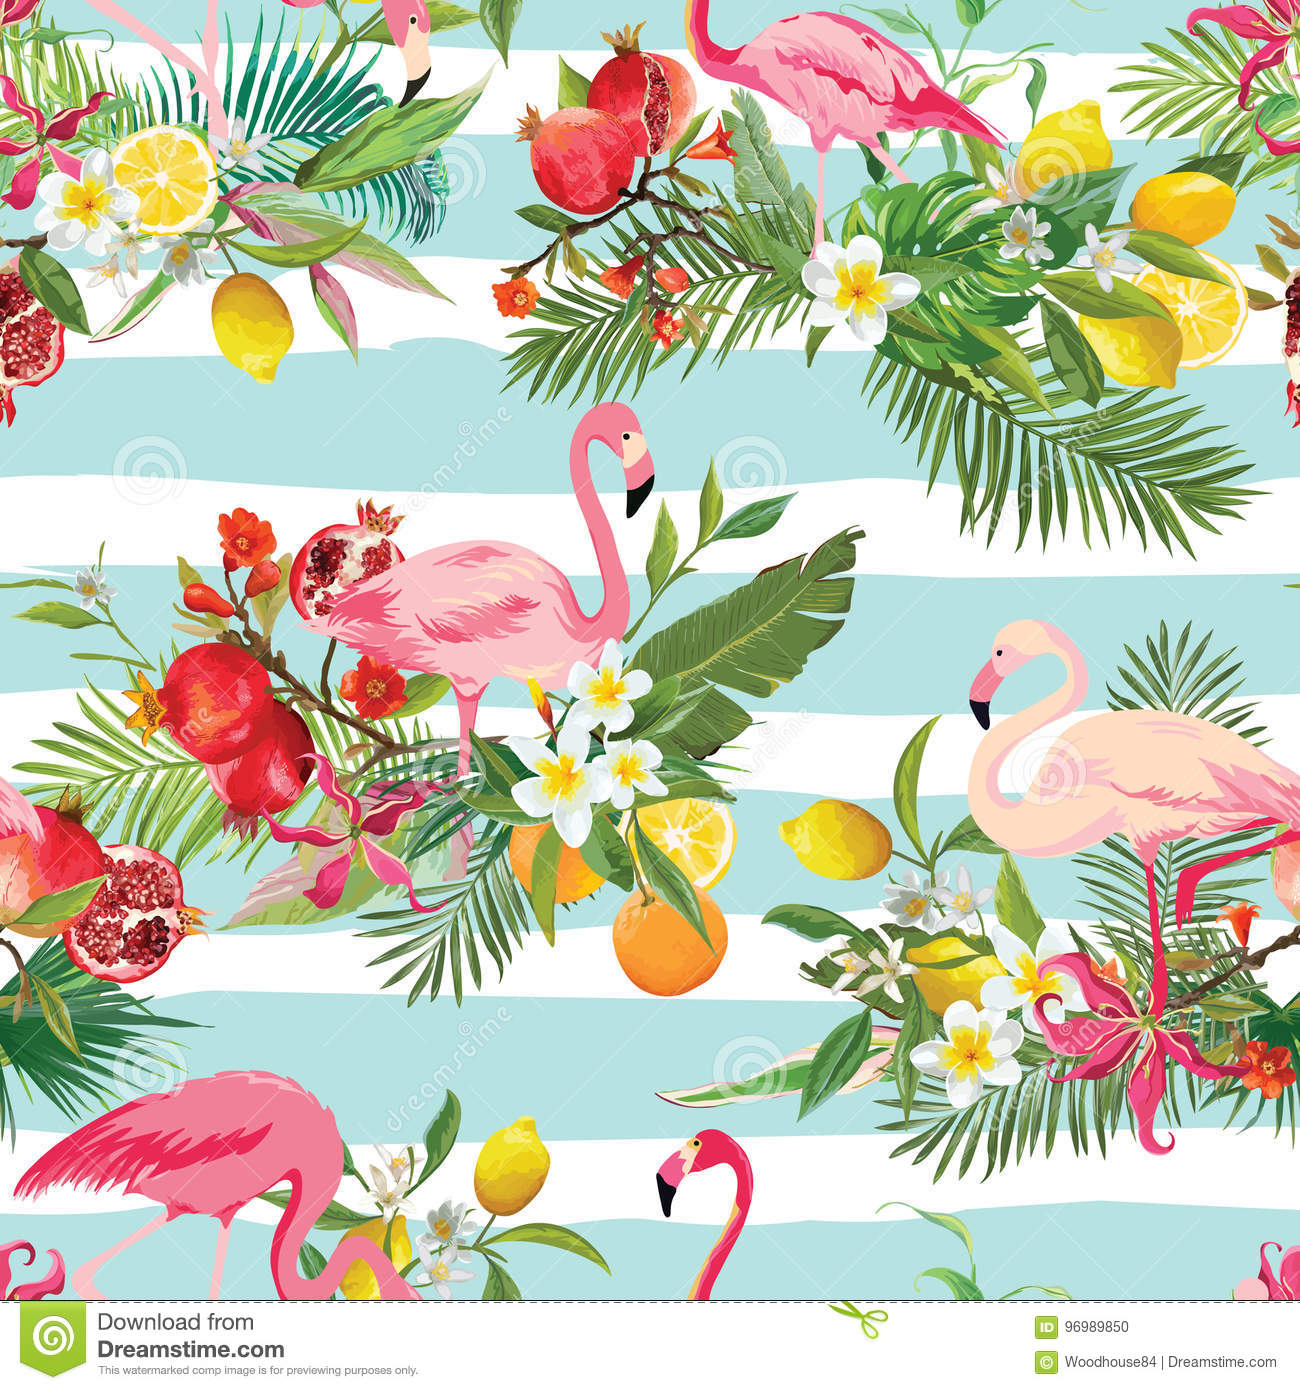 Vintage Style Tropical Bird And Flowers Background: Tropical Fruits, Flowers And Flamingo Birds Seamless